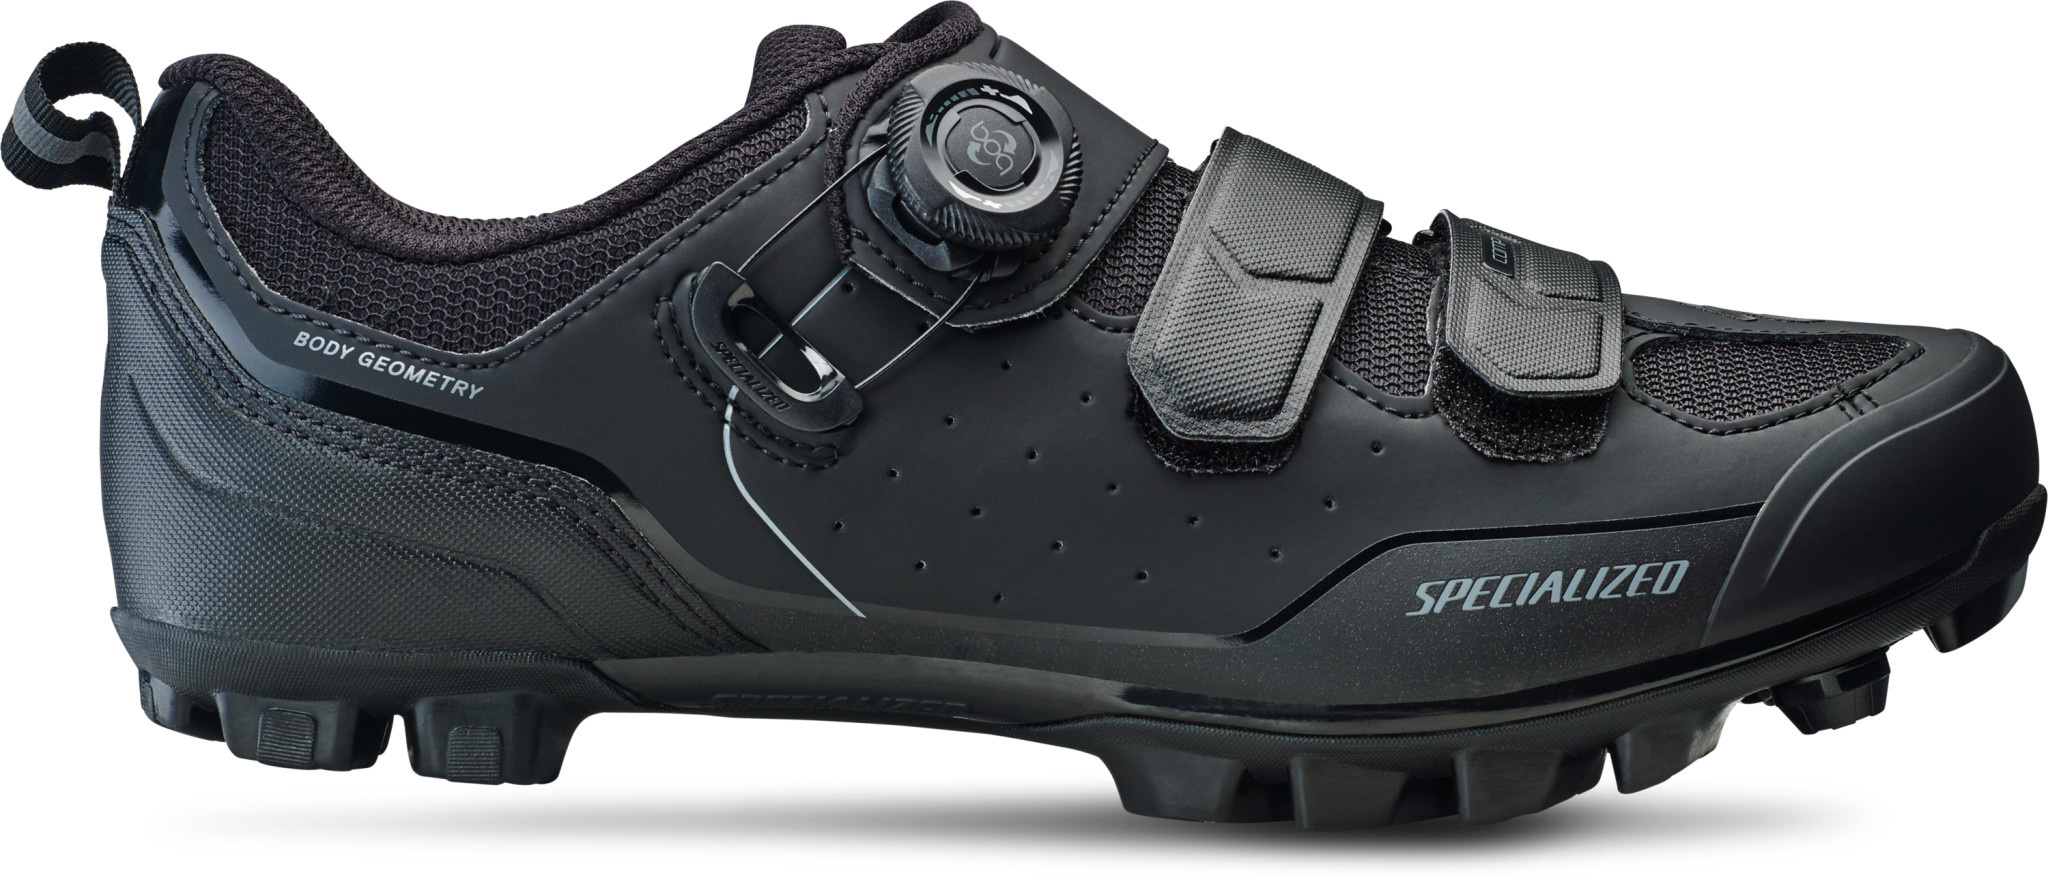 Specialized Comp Mtb Shoes Blk/Dkgry